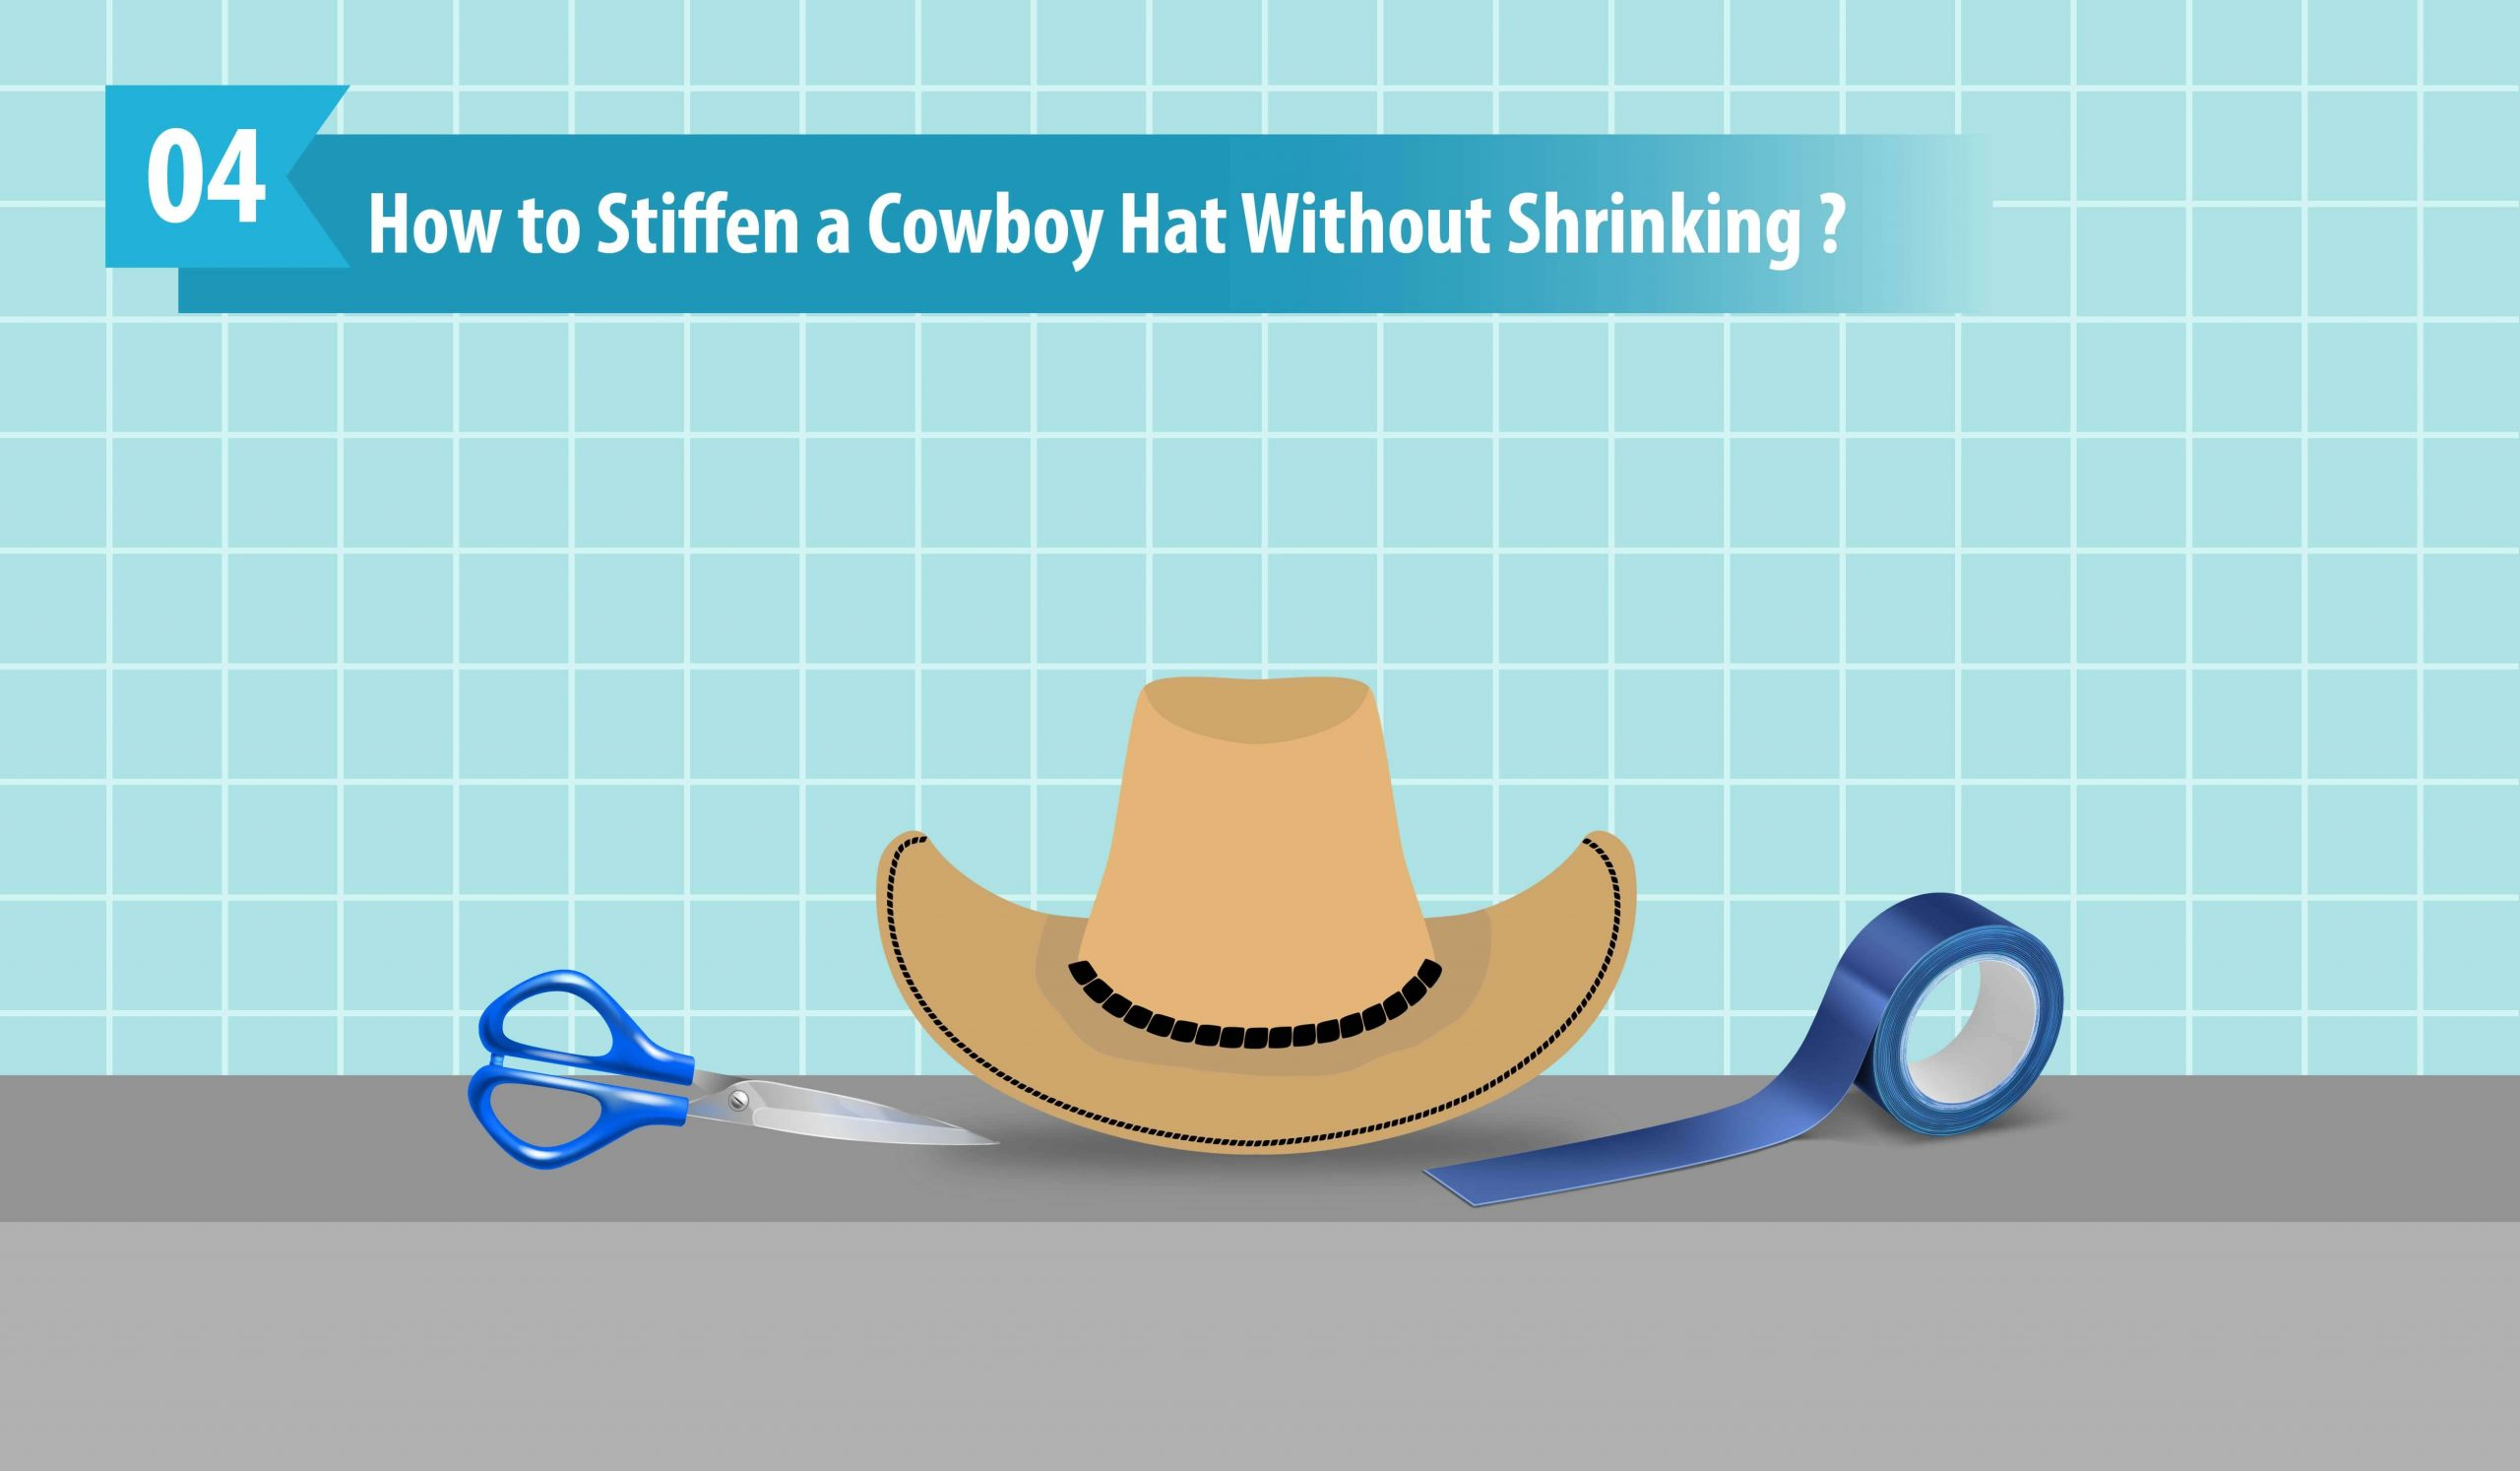 How to Stiffen a Cowboy Hat Without Shrinking